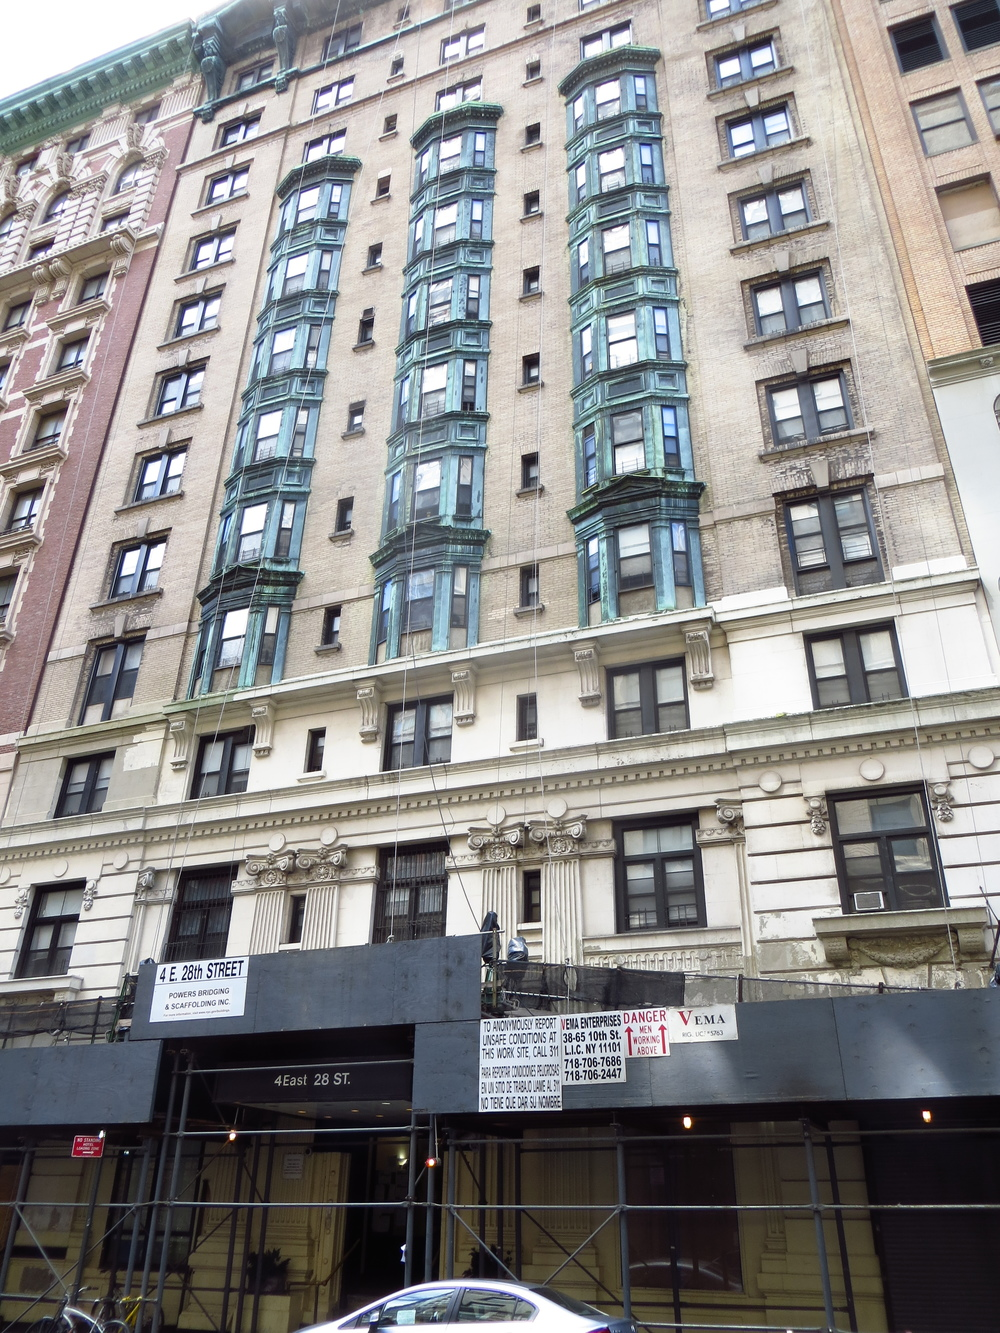 Cheapest(?) hotel in town: Where my NY adventure began